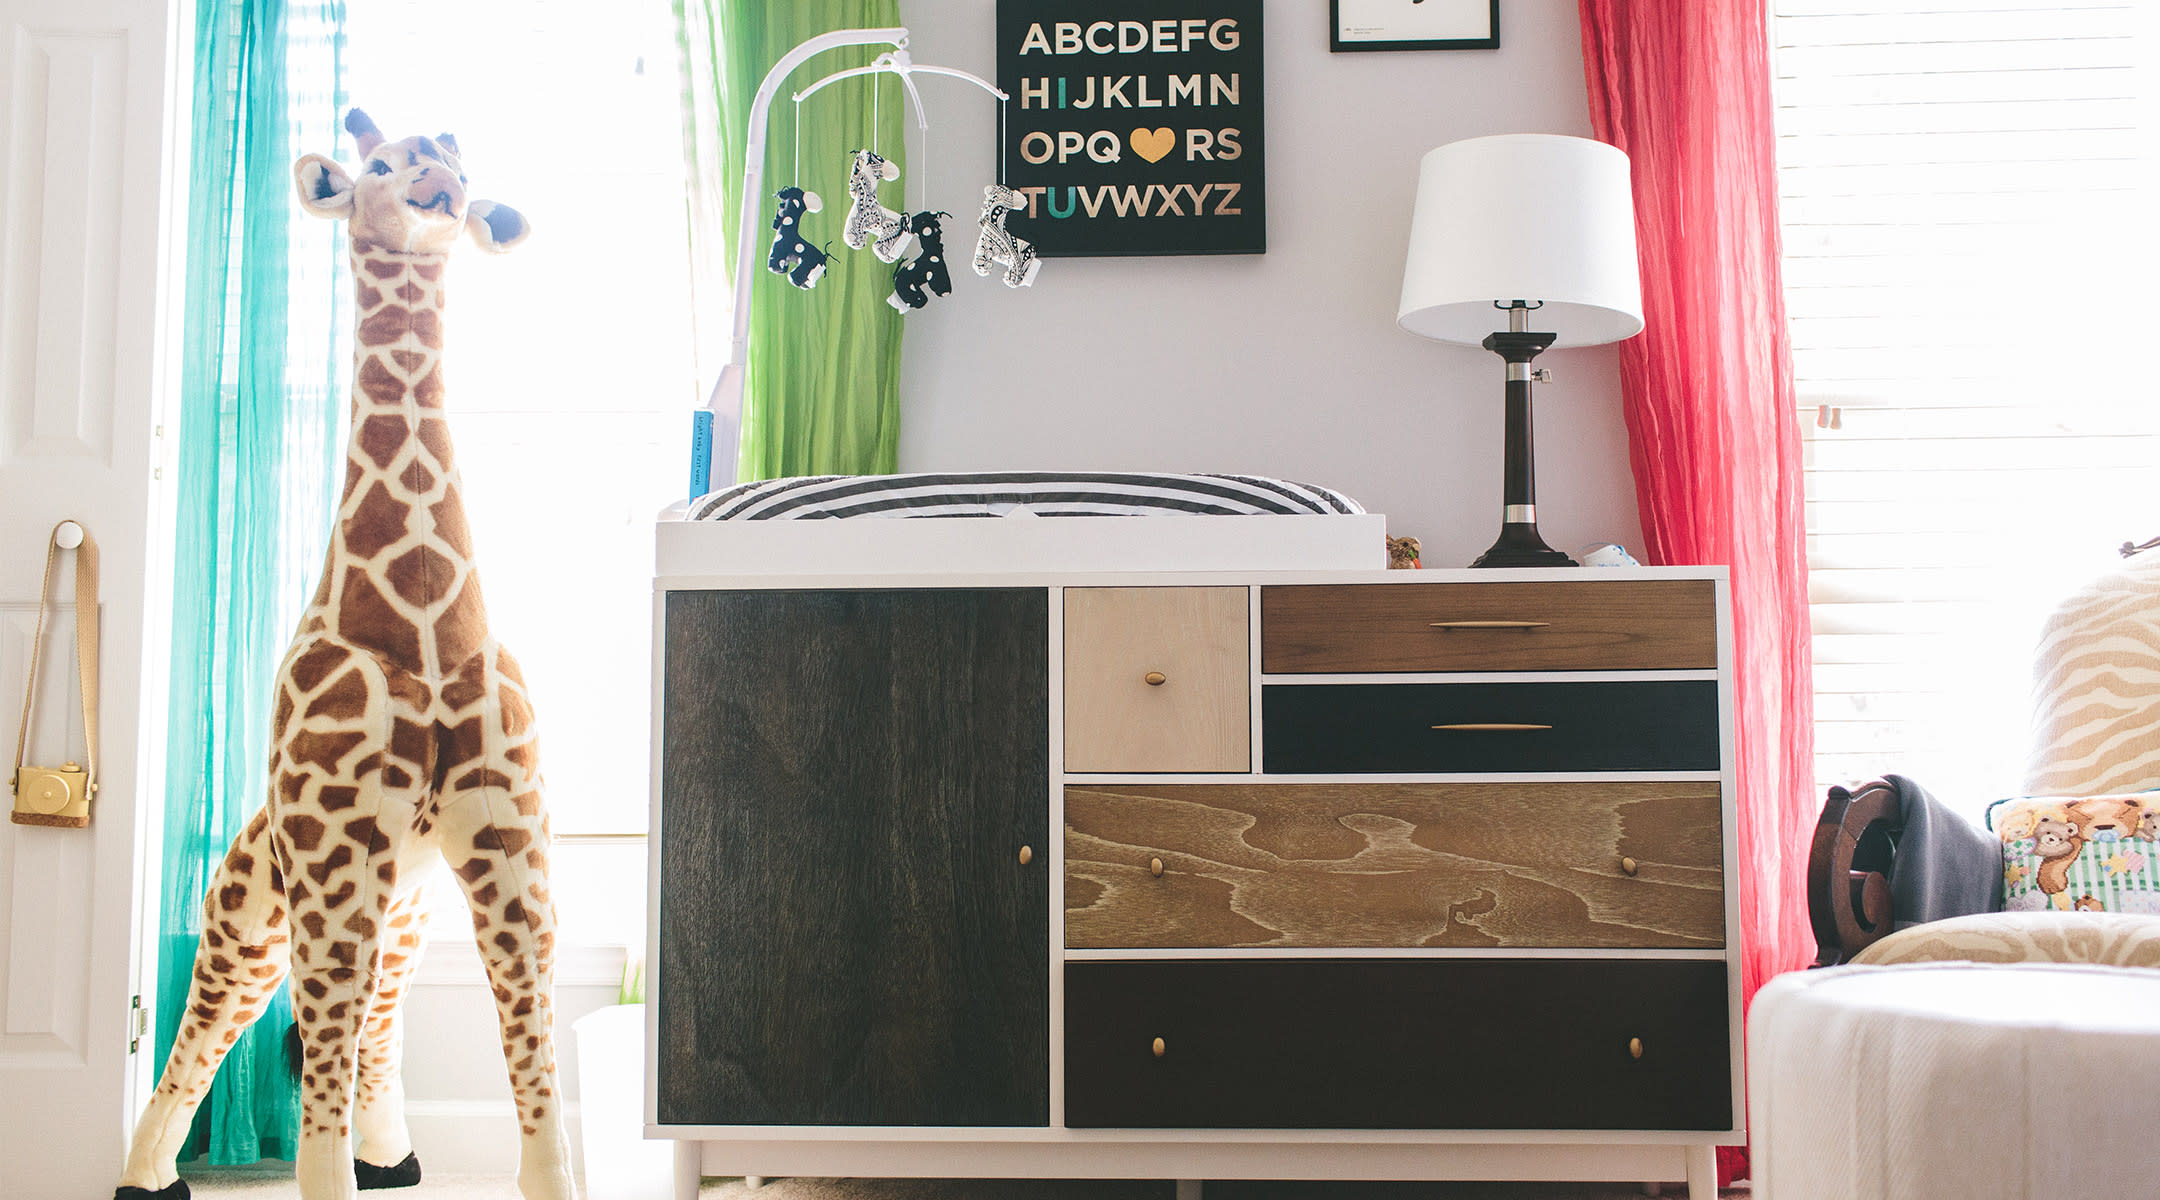 changing table in decorated nursery room